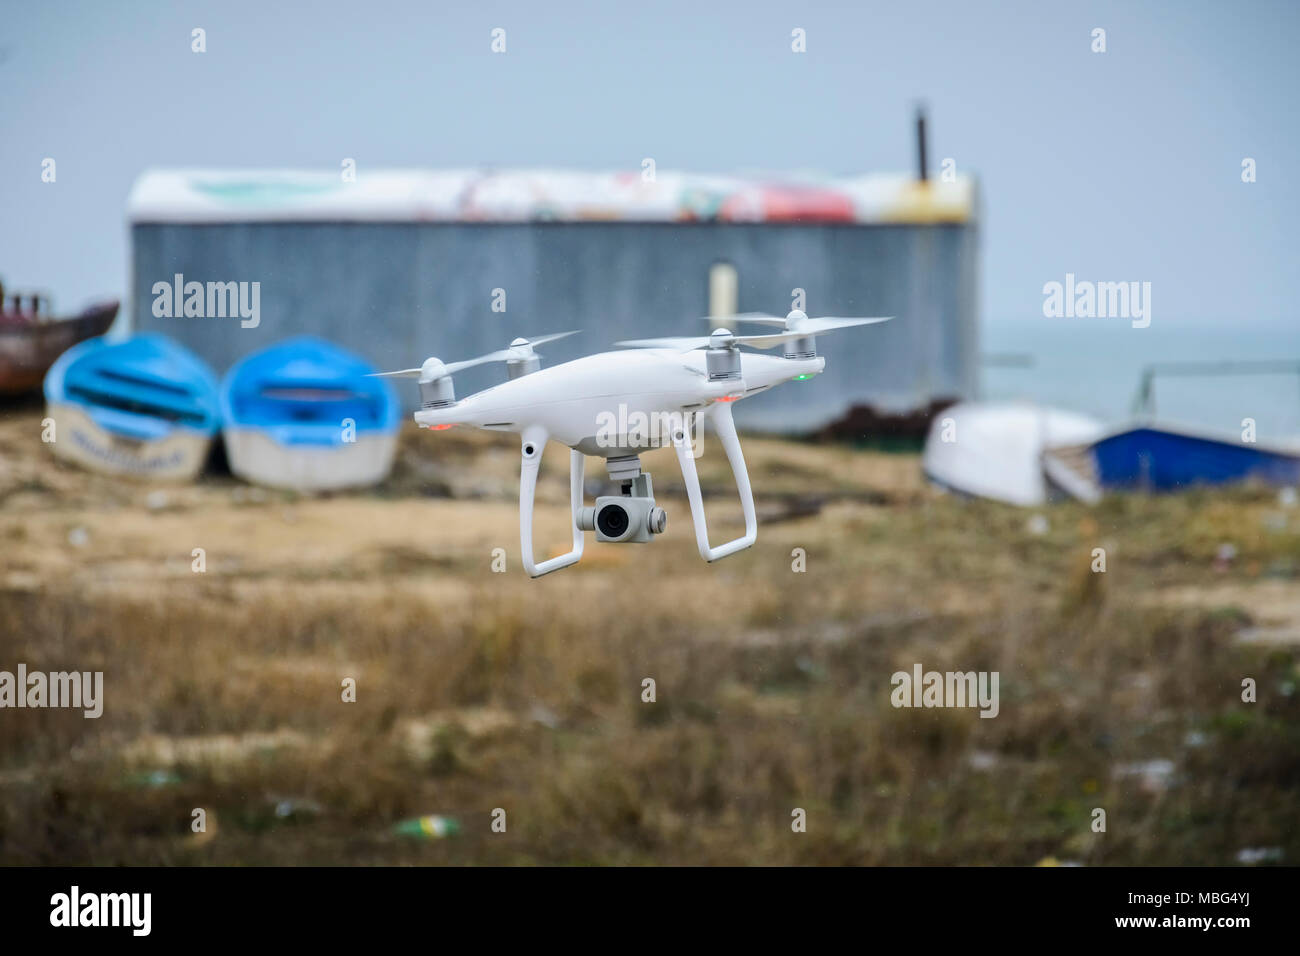 Drone flying in front of a blurry background of boats and depot - Stock Image